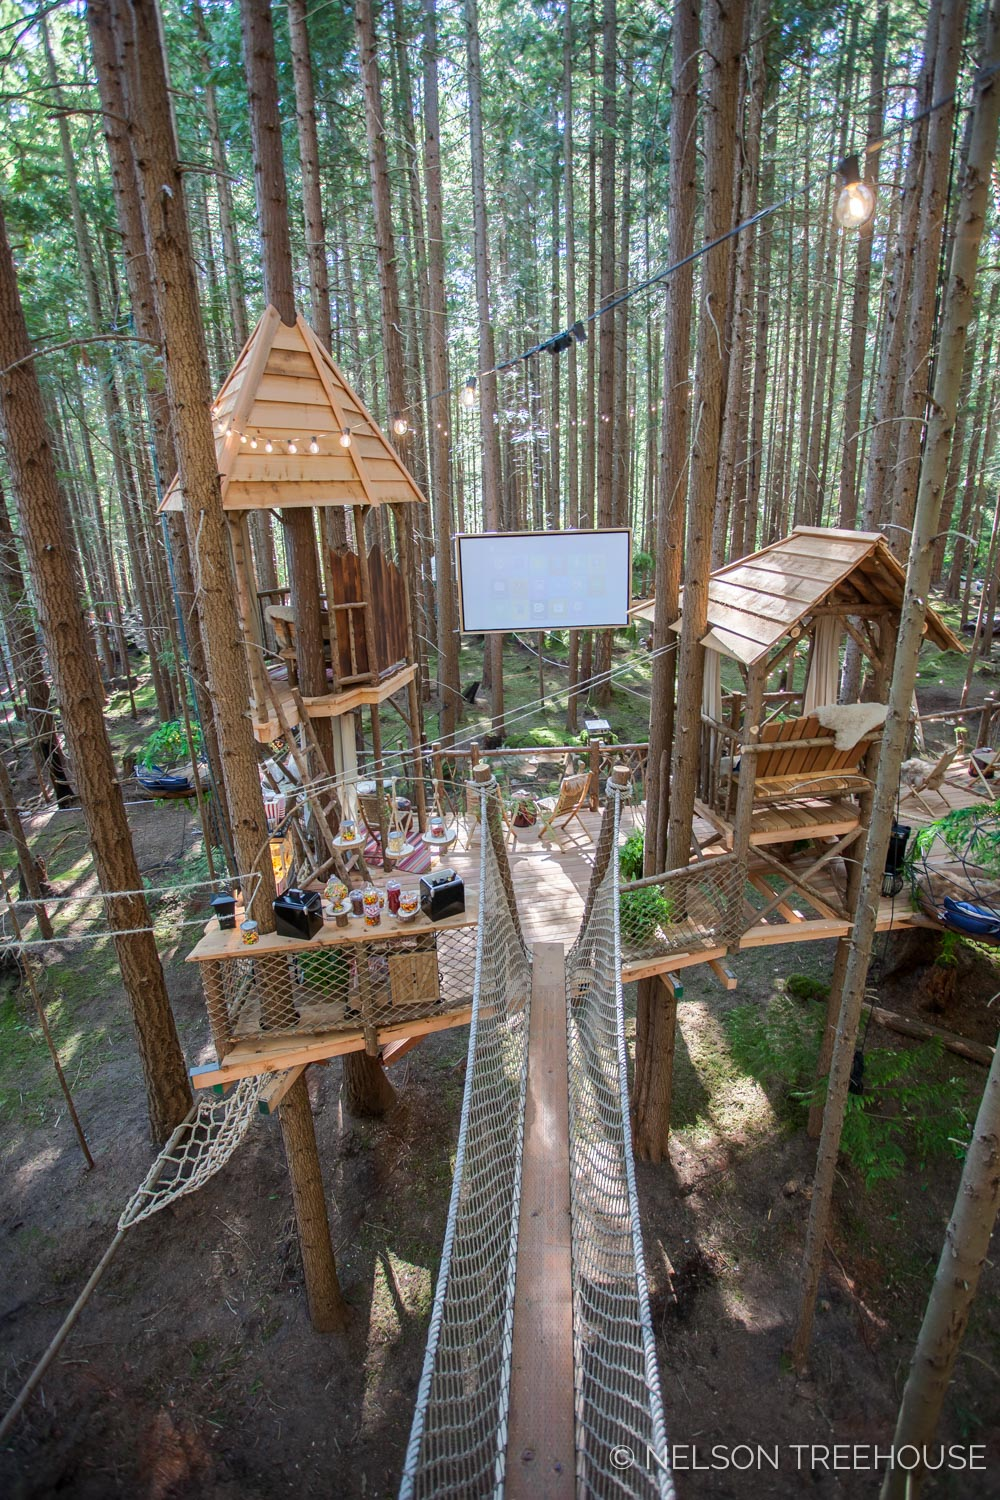 Treetop-Movie-Theater-2018-Nelson-Treehouse-676.jpg